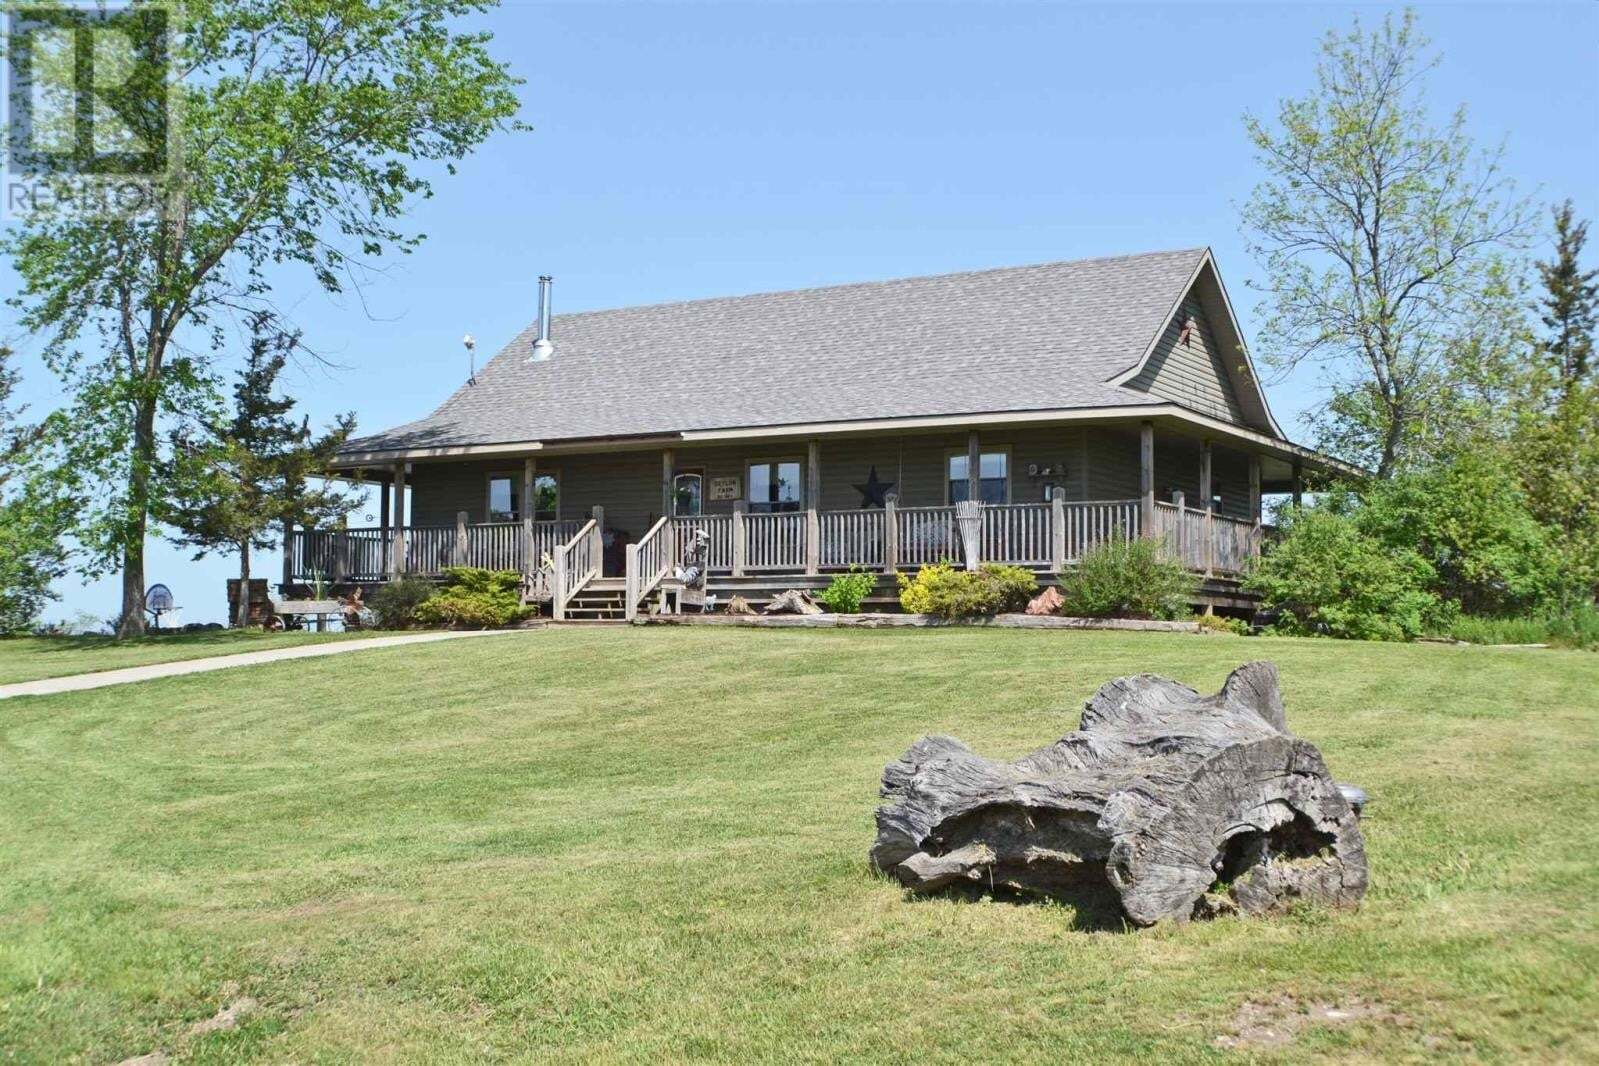 Home for sale at 670 Miller Rd Stone Mills Ontario - MLS: K20003690